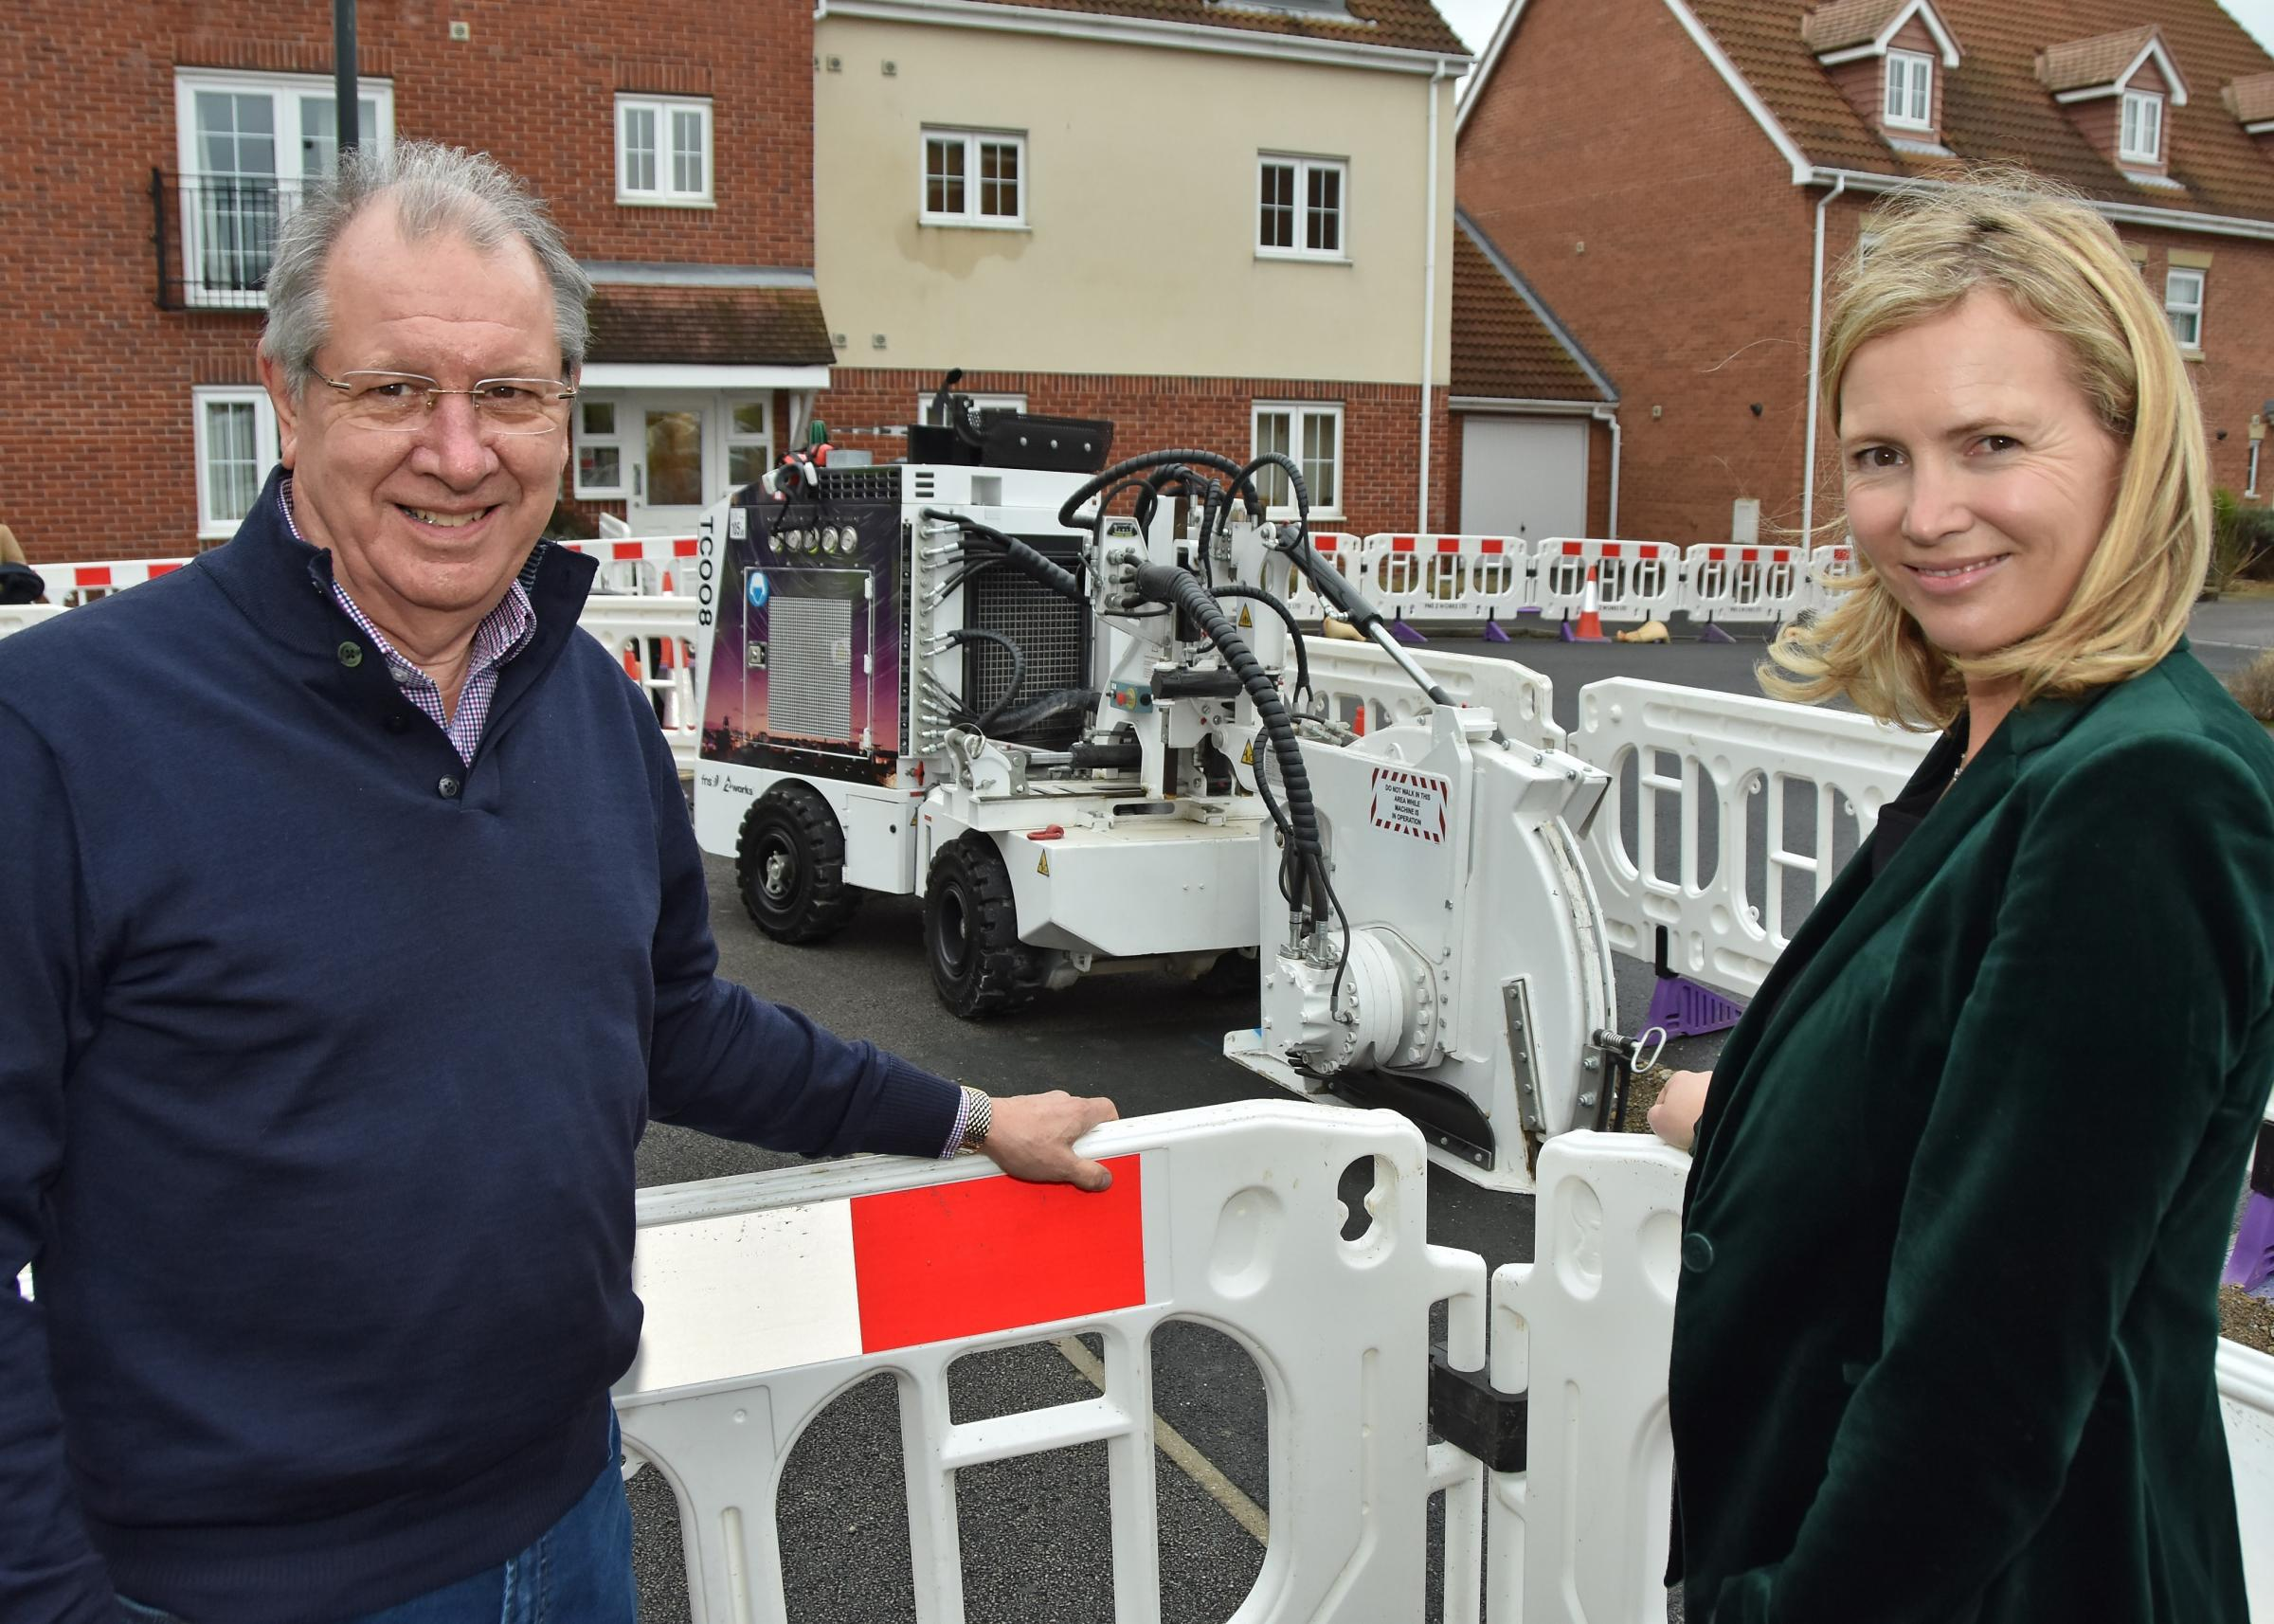 Pictured in Dringhouses with the new trenching machine are City of York Council's David Carr and CEO of Talk Talk Tristia Harrison.